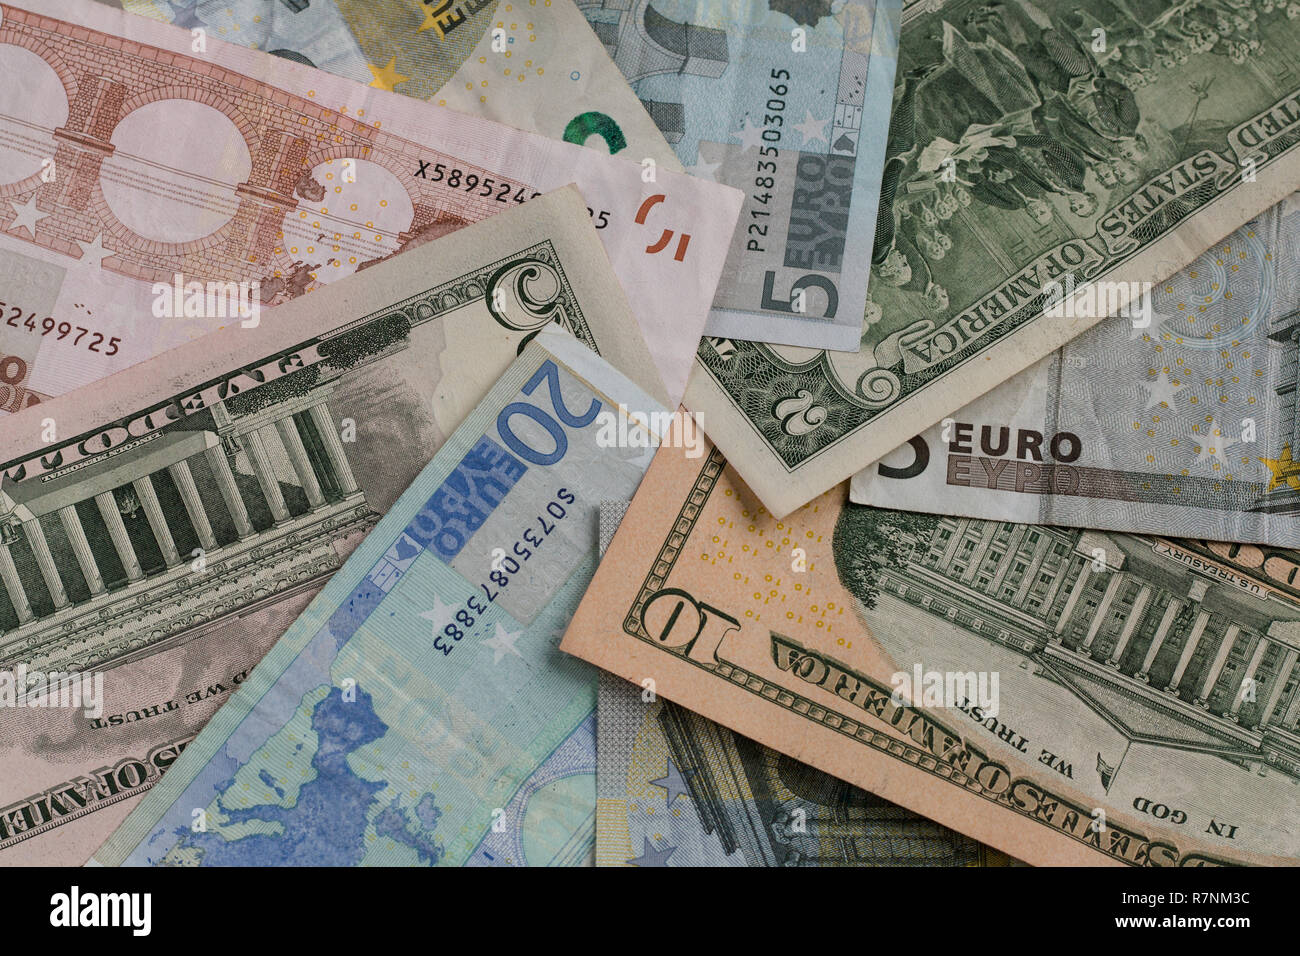 Euro Eur And Us Dollars Usd Currency Banknote Background Major Reserve Currencies